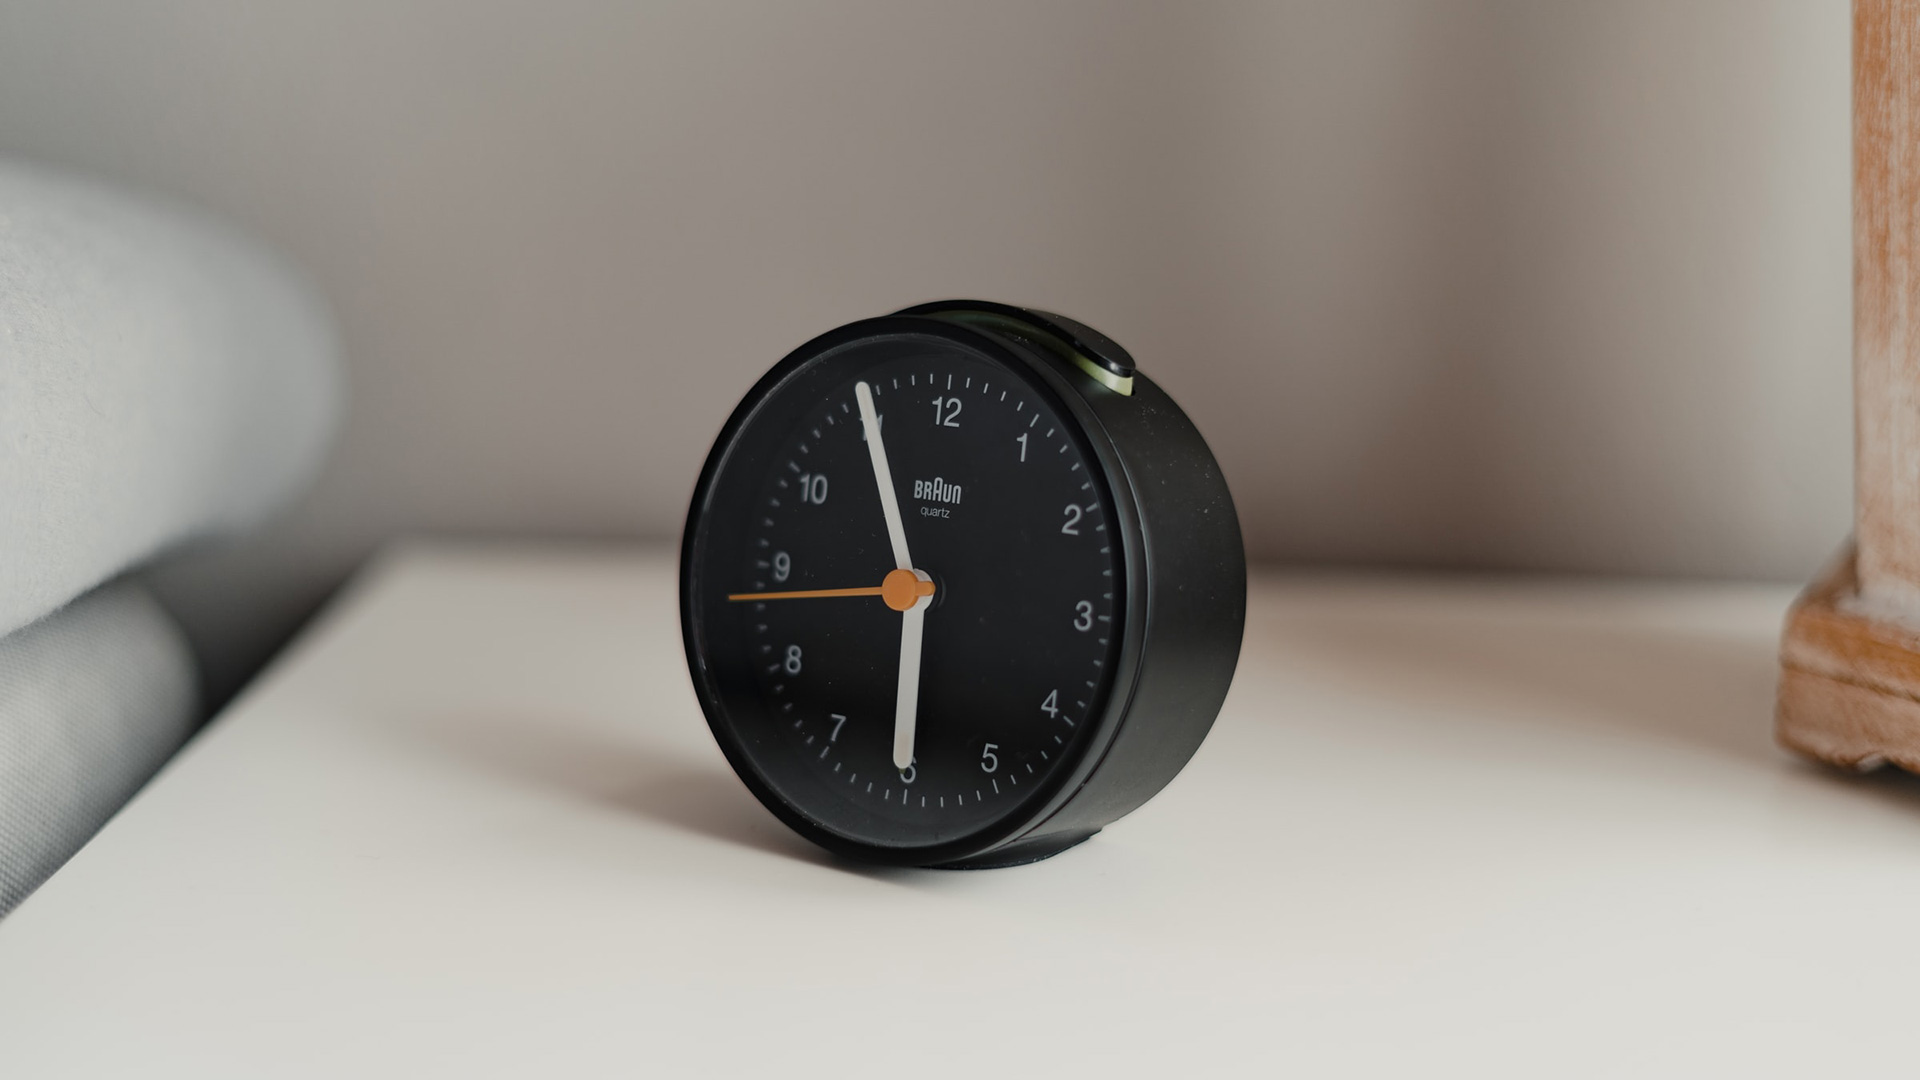 Best Alarm Clock 2021 Start The Day Off Right With Our Top Picks T3